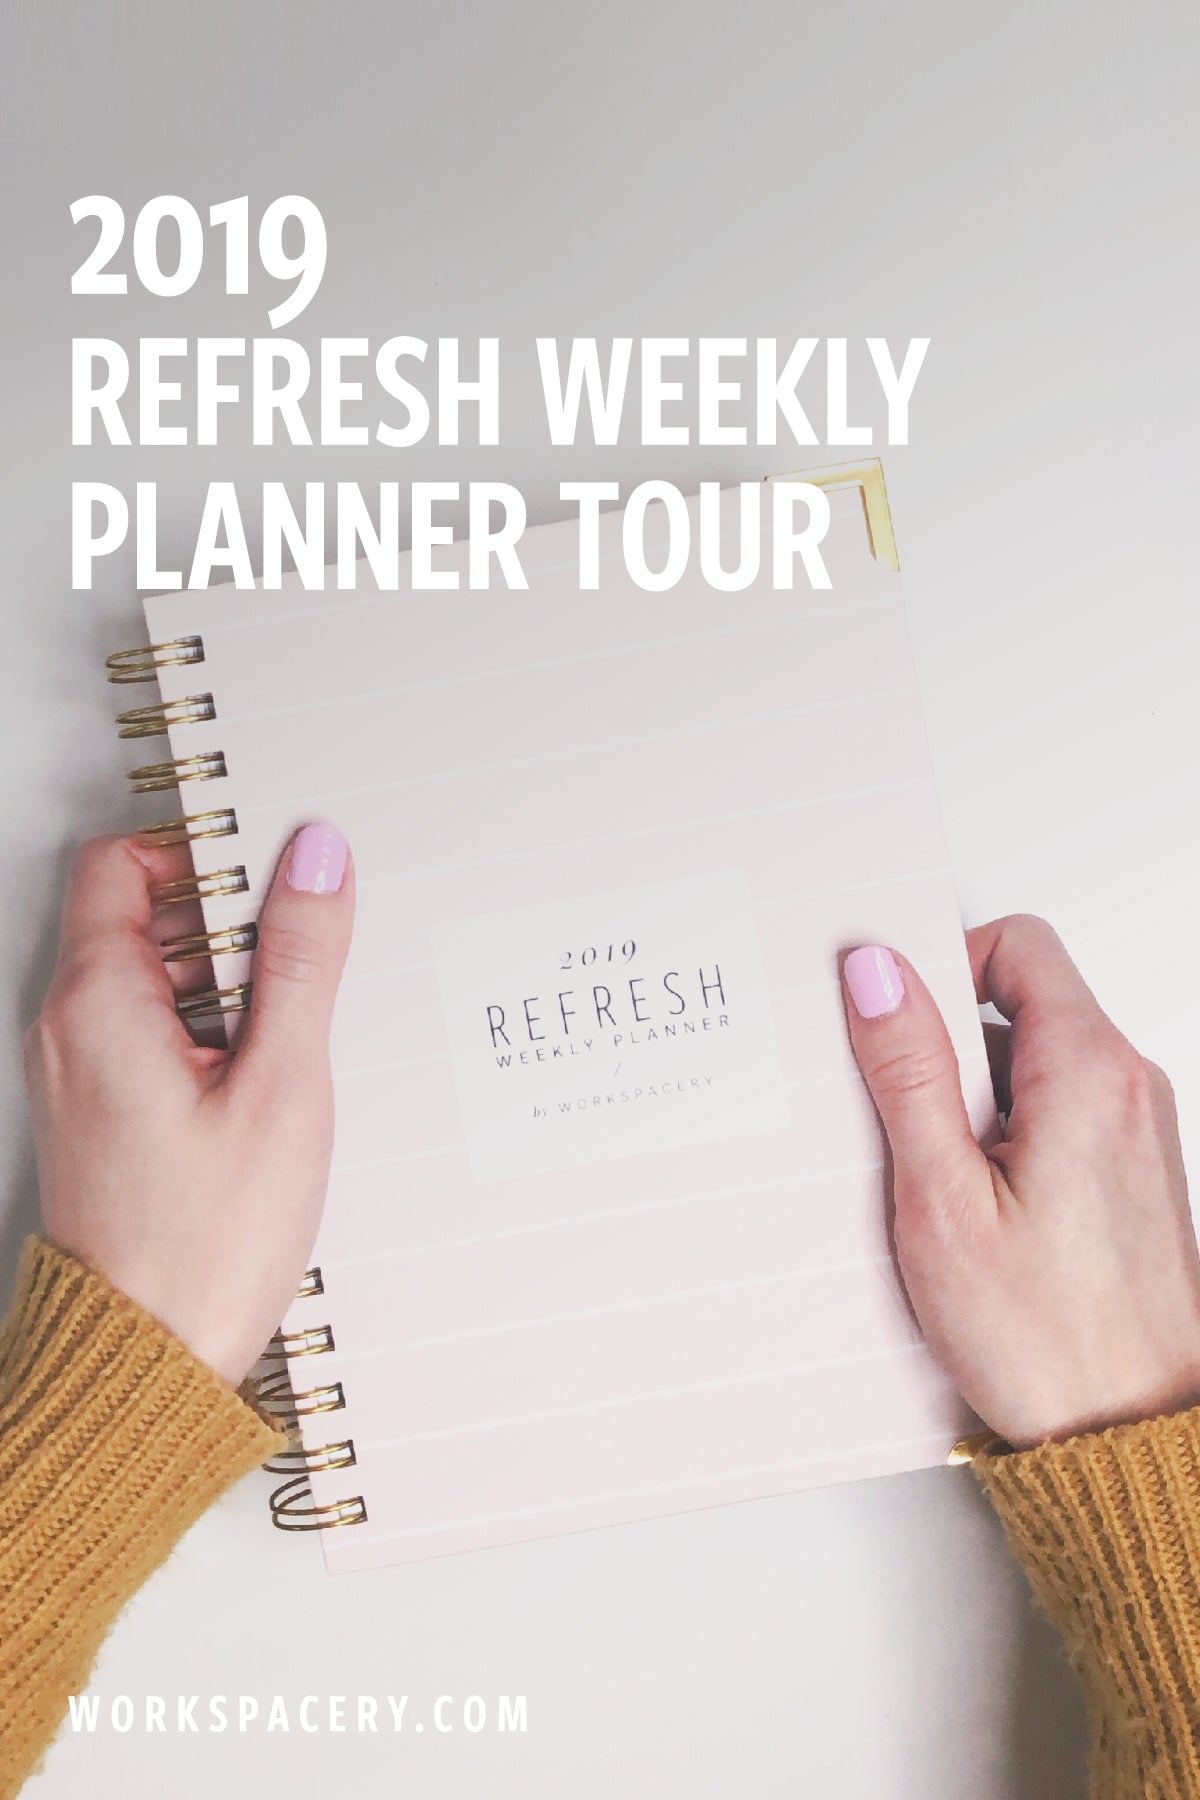 2019 Refresh Weekly Planner Tour